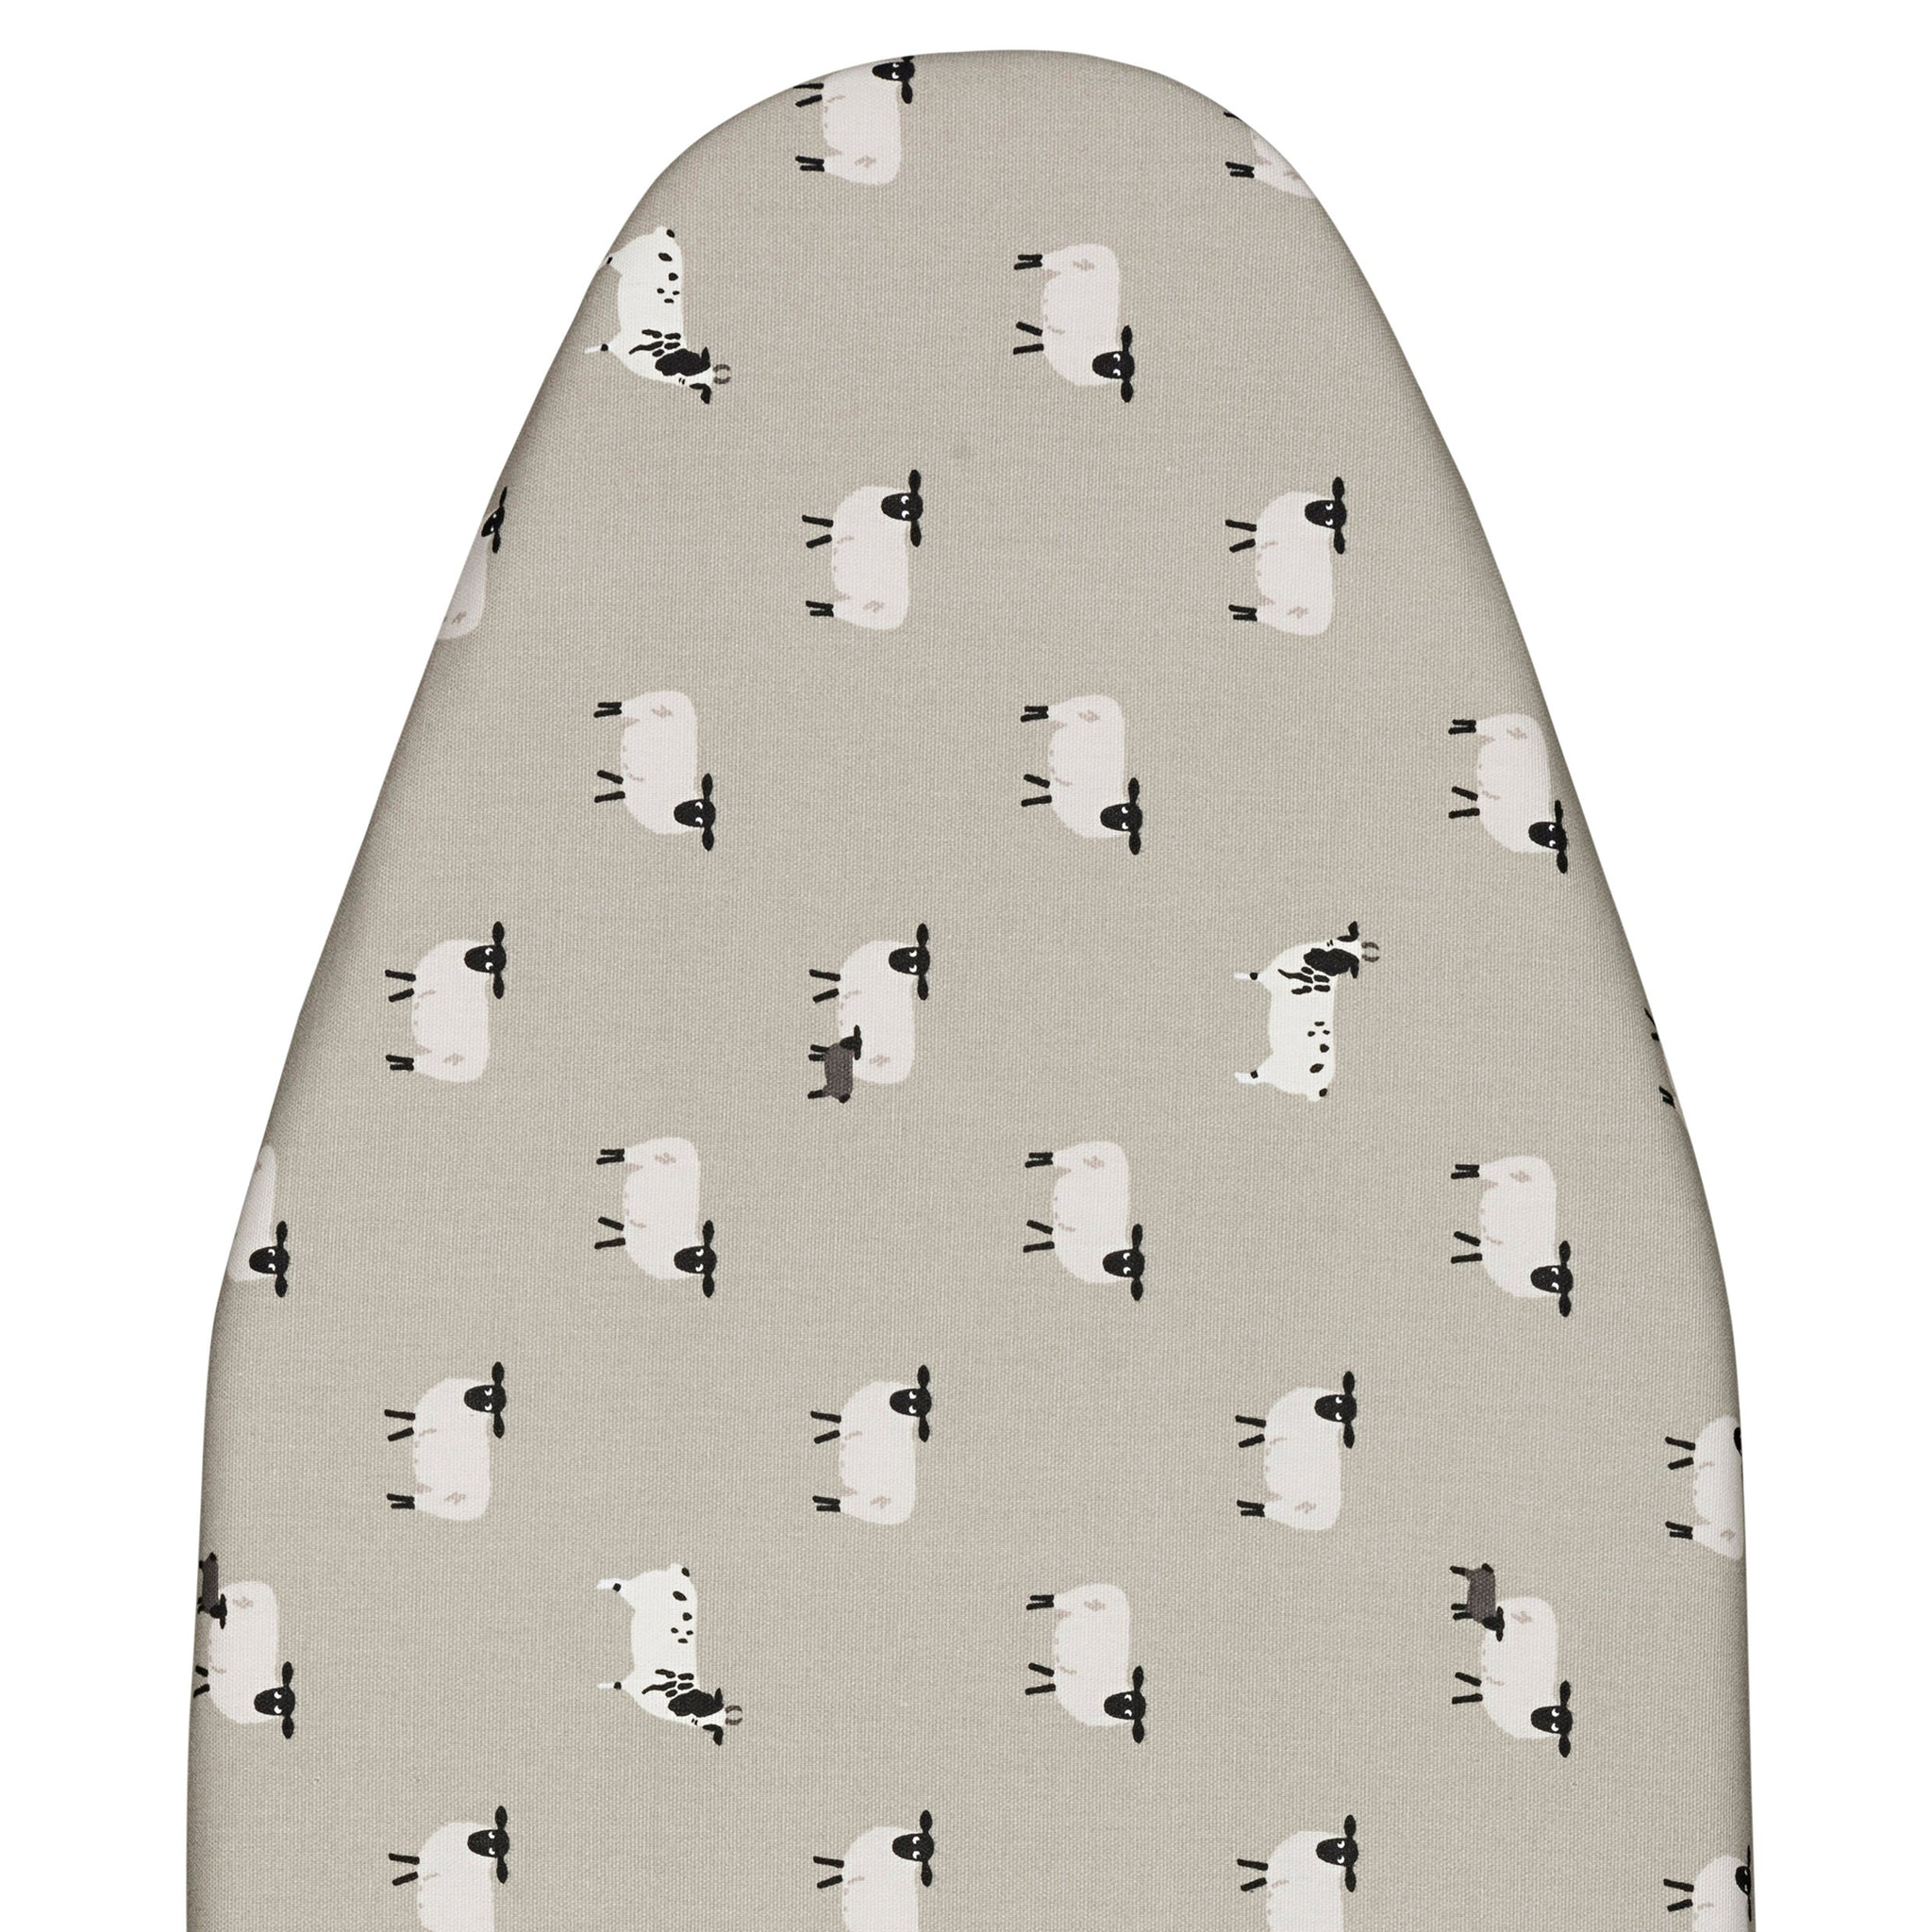 Sheep Ironing Board Cover